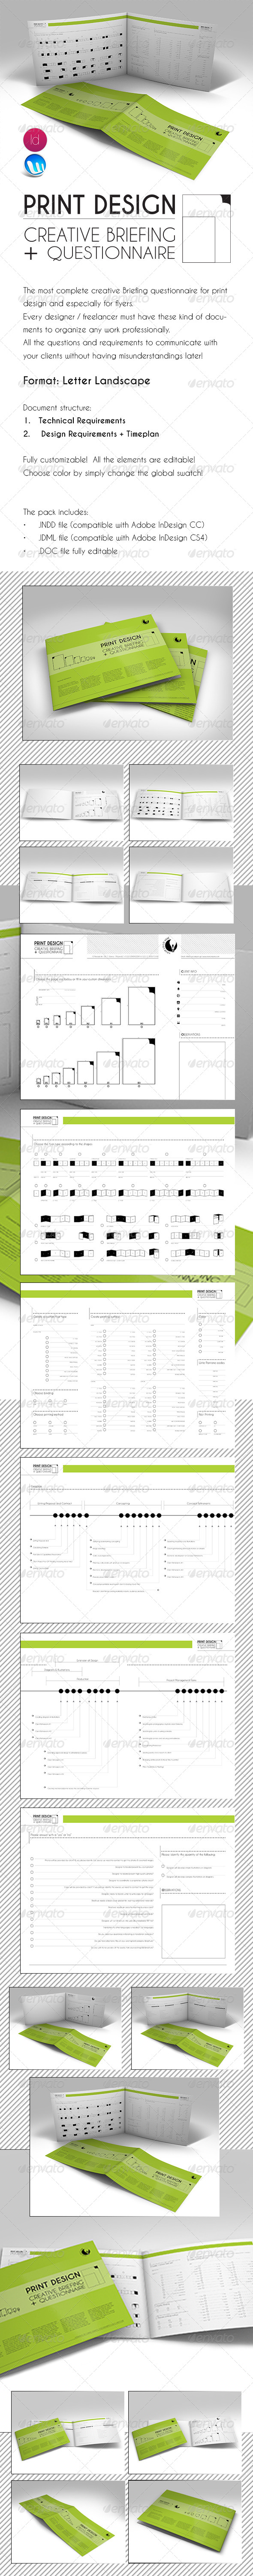 Poster design questionnaire - Print Design Creative Briefing Questionnaire